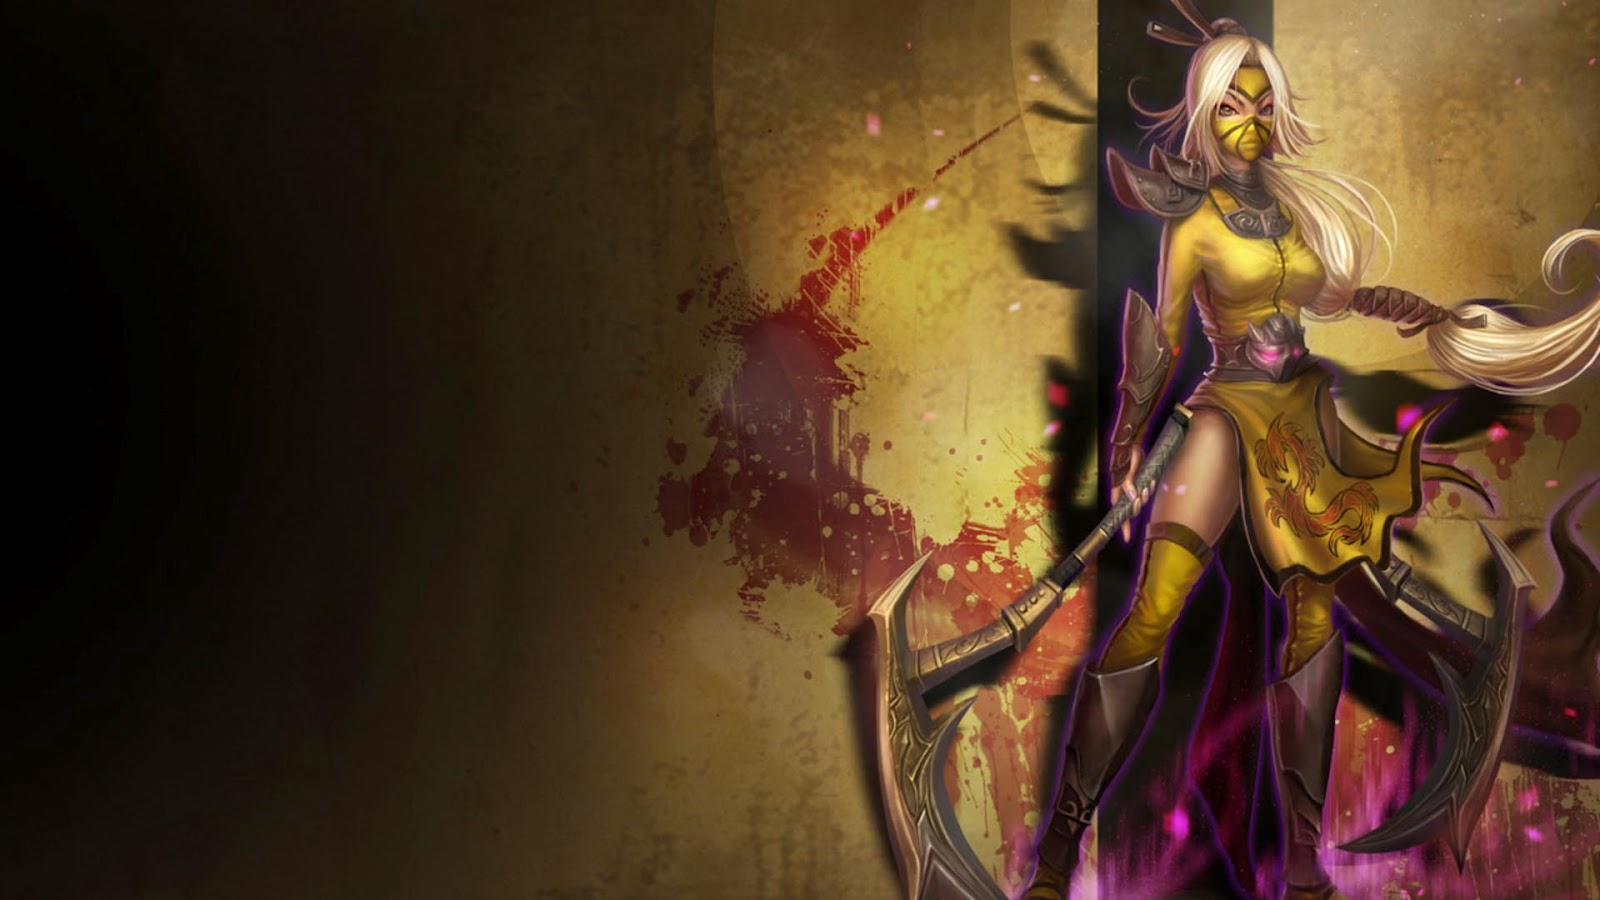 http://2.bp.blogspot.com/-Zl_k65qoyVc/UBdl7CMfi3I/AAAAAAAAI_A/uQYBFJgSDuM/s1600/league_of_legends_hd_wallpapers+3.jpg